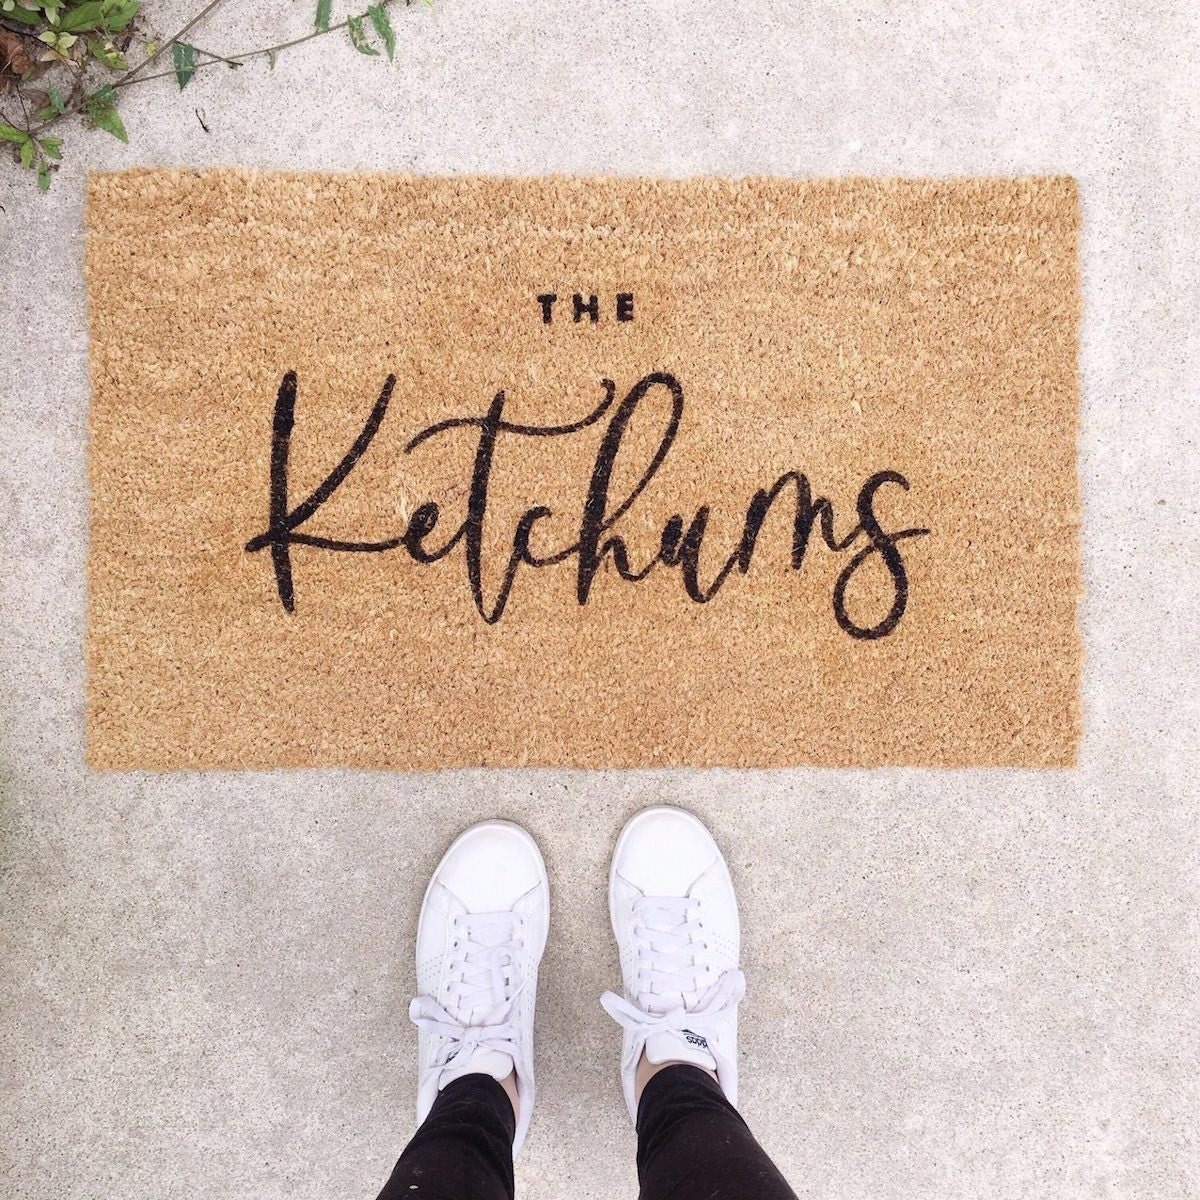 Personalized door mat from Etsy